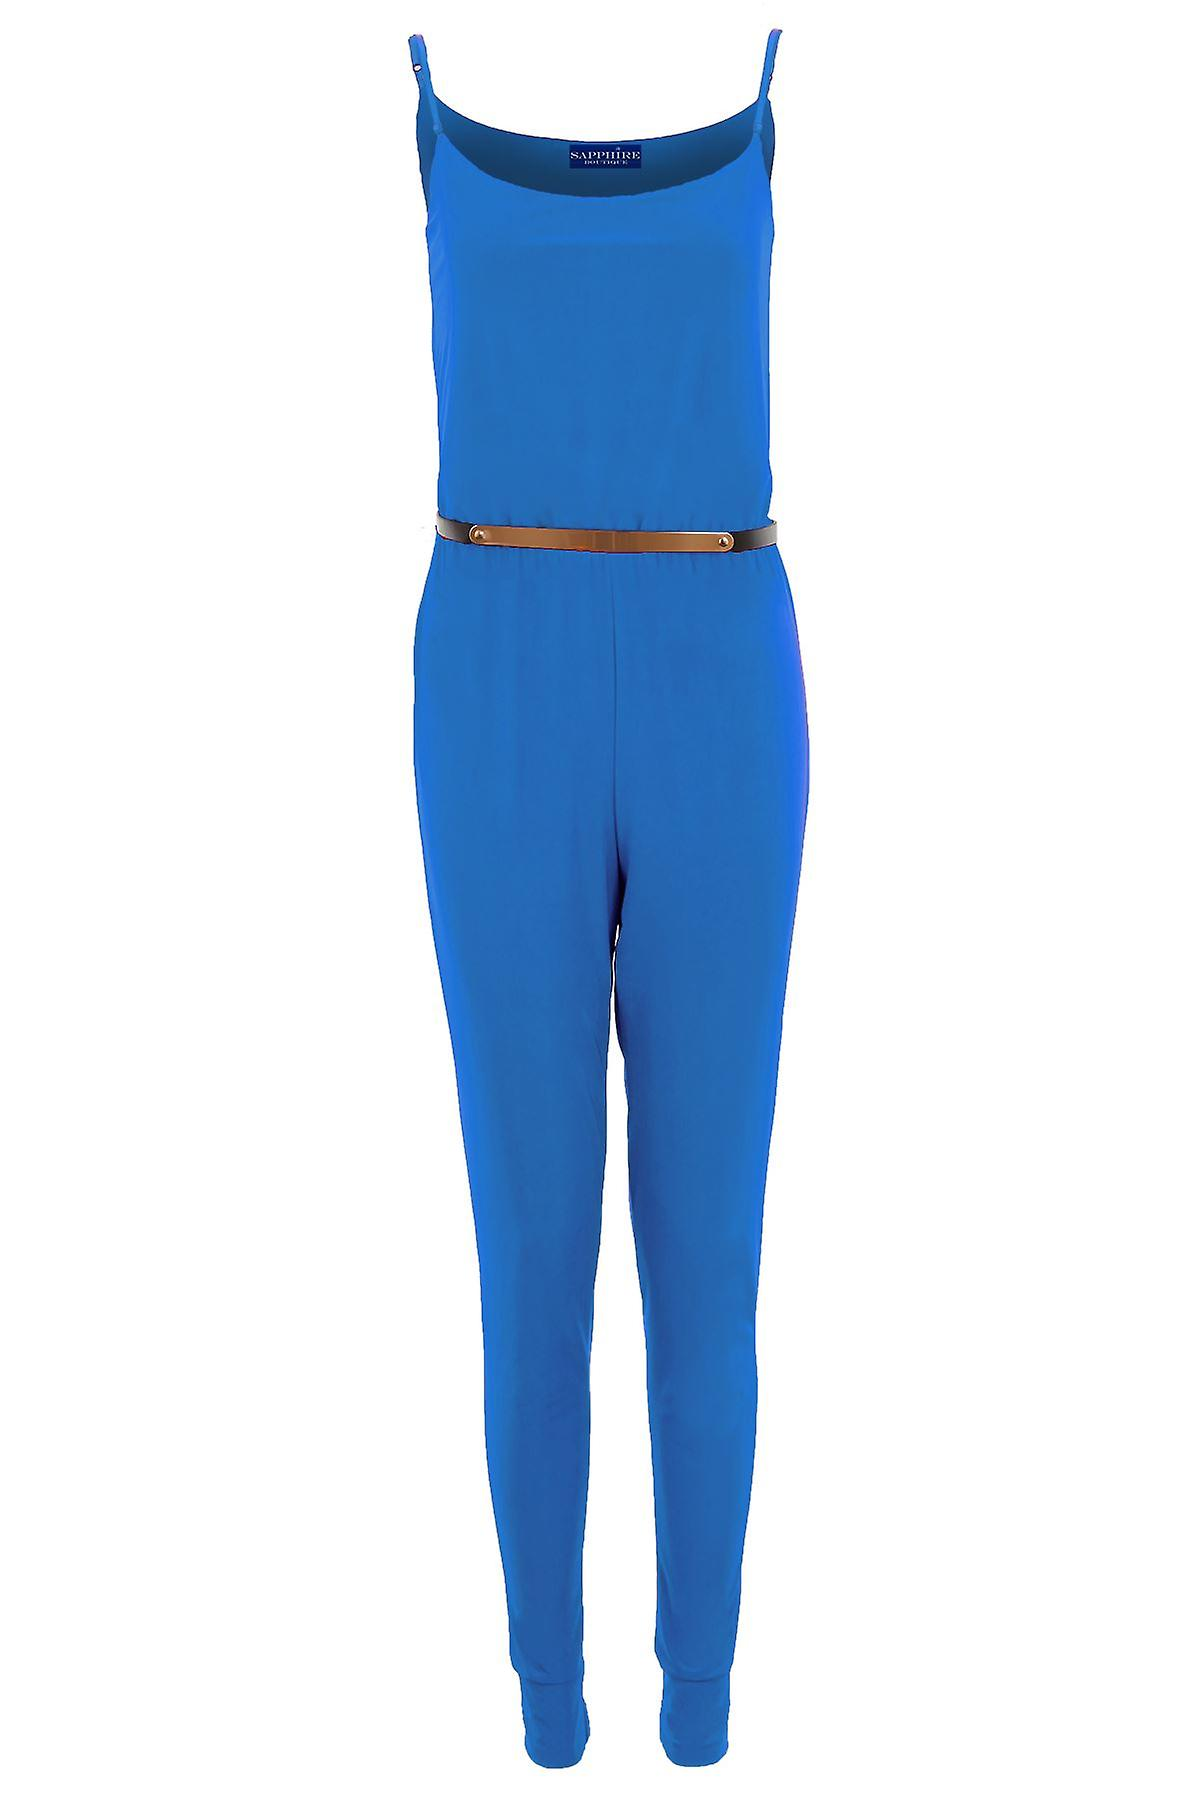 Ladies Gold Belted All In One Celebrity Style Trouser Strap Playsuit Women's Jumpsuit